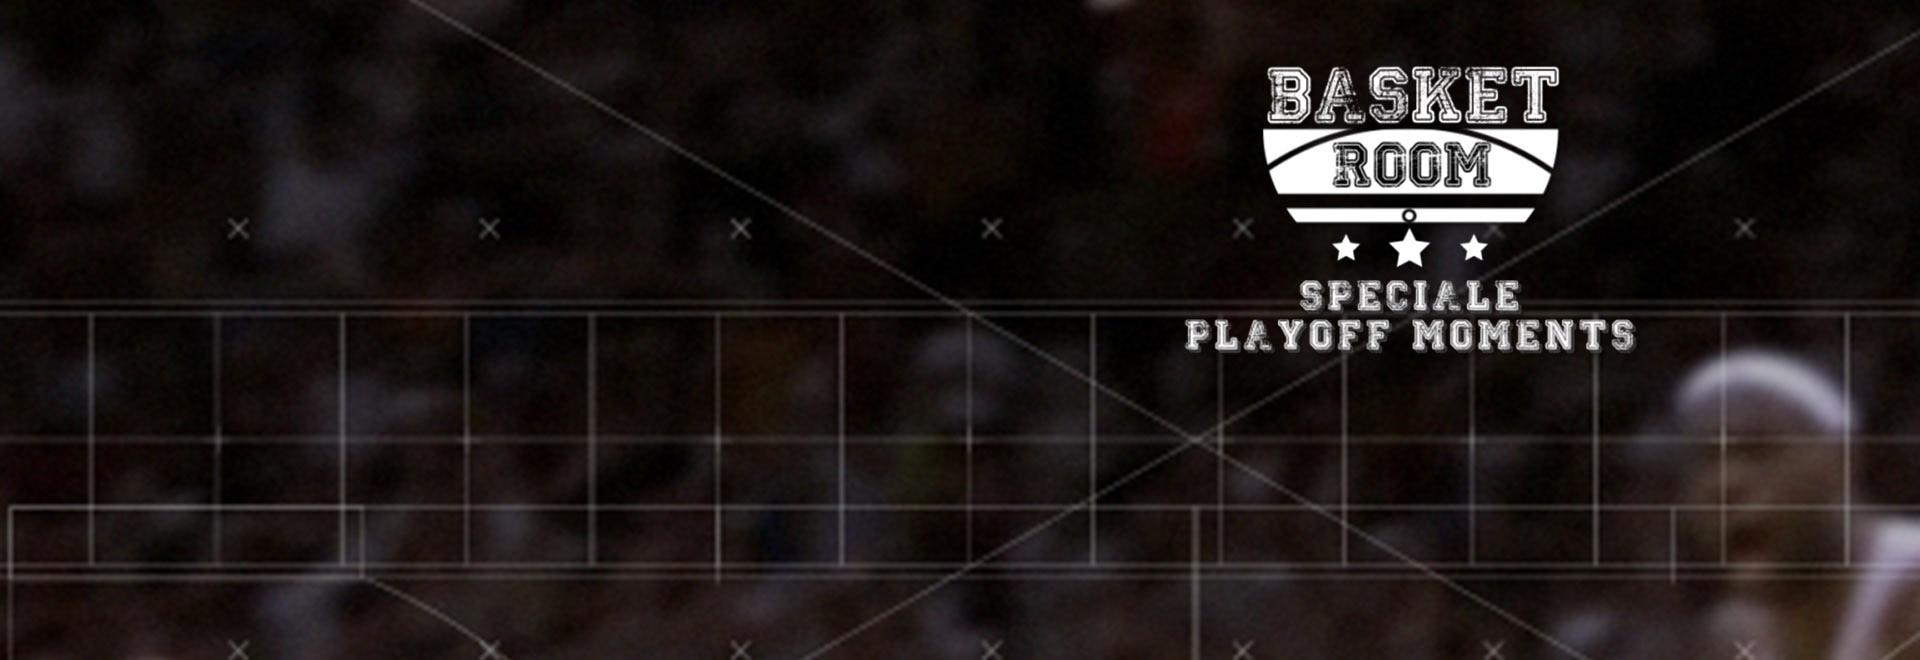 Speciale Playoff NBA